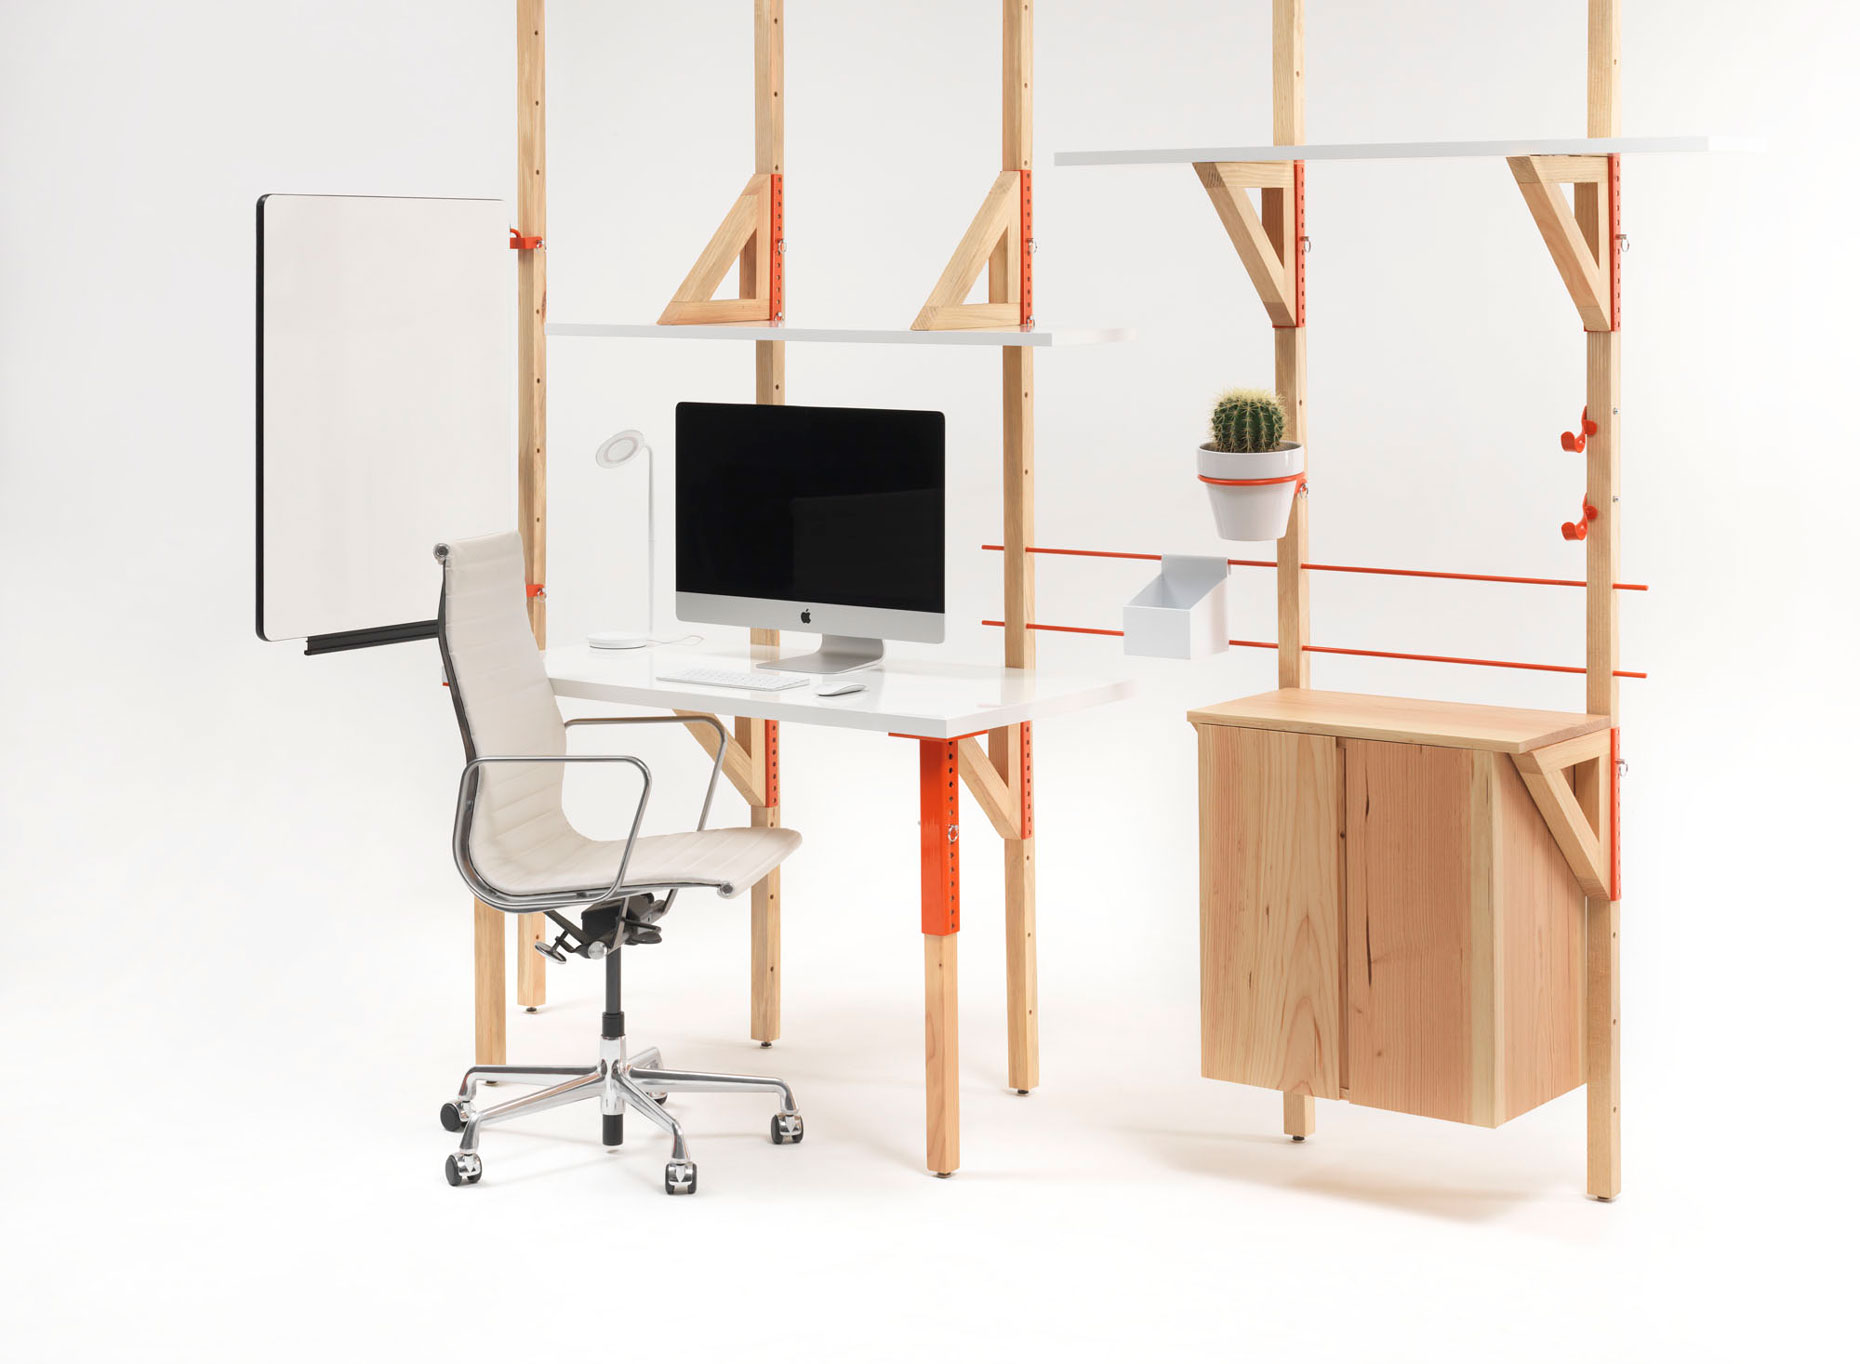 modular desk system practical application